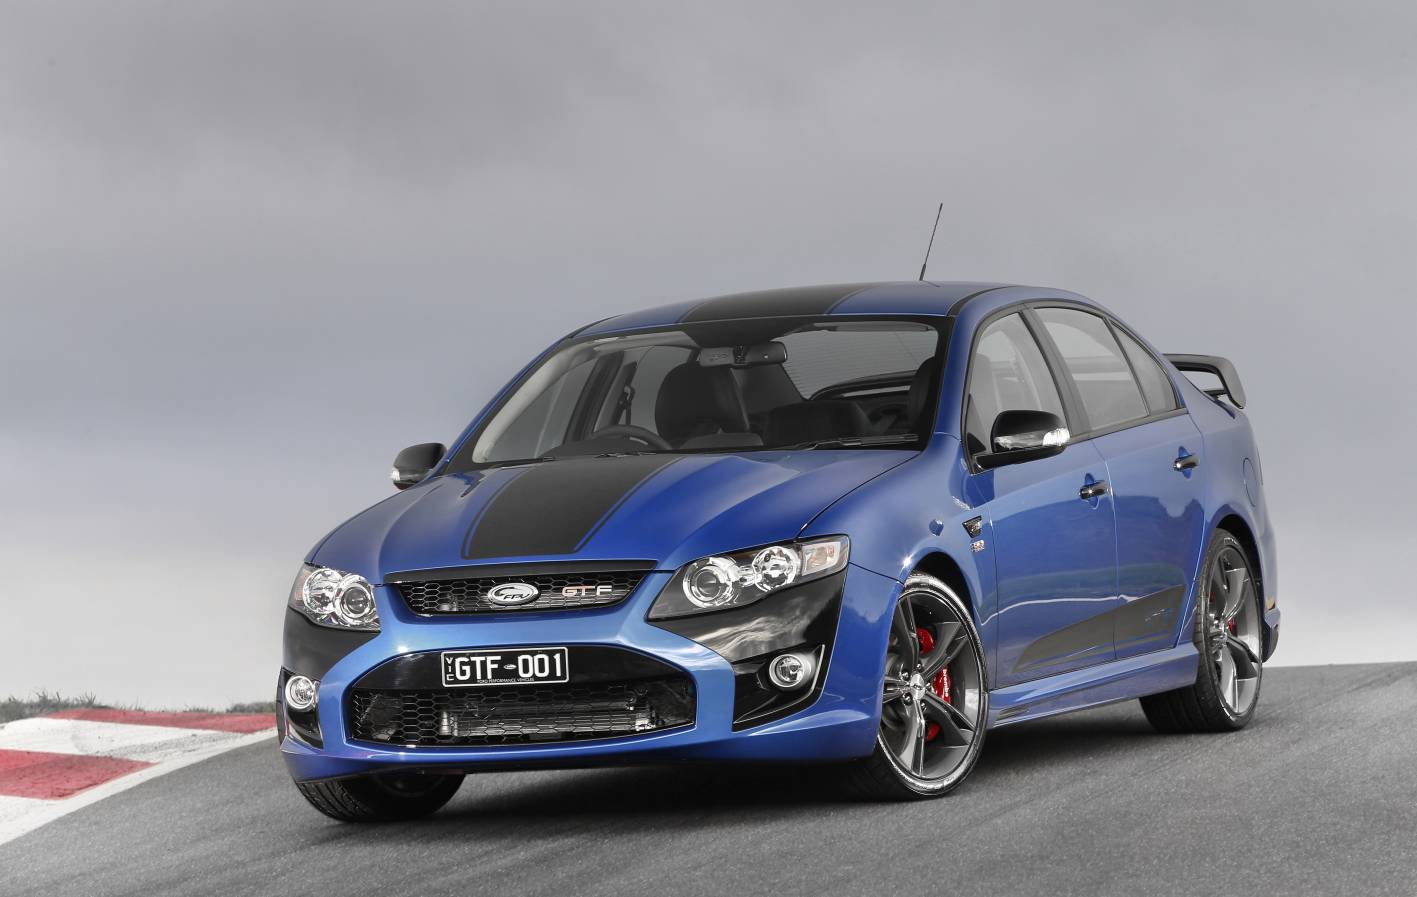 For Sale: Ford FPV GT F build numbers 001 and 500 | PerformanceDrive